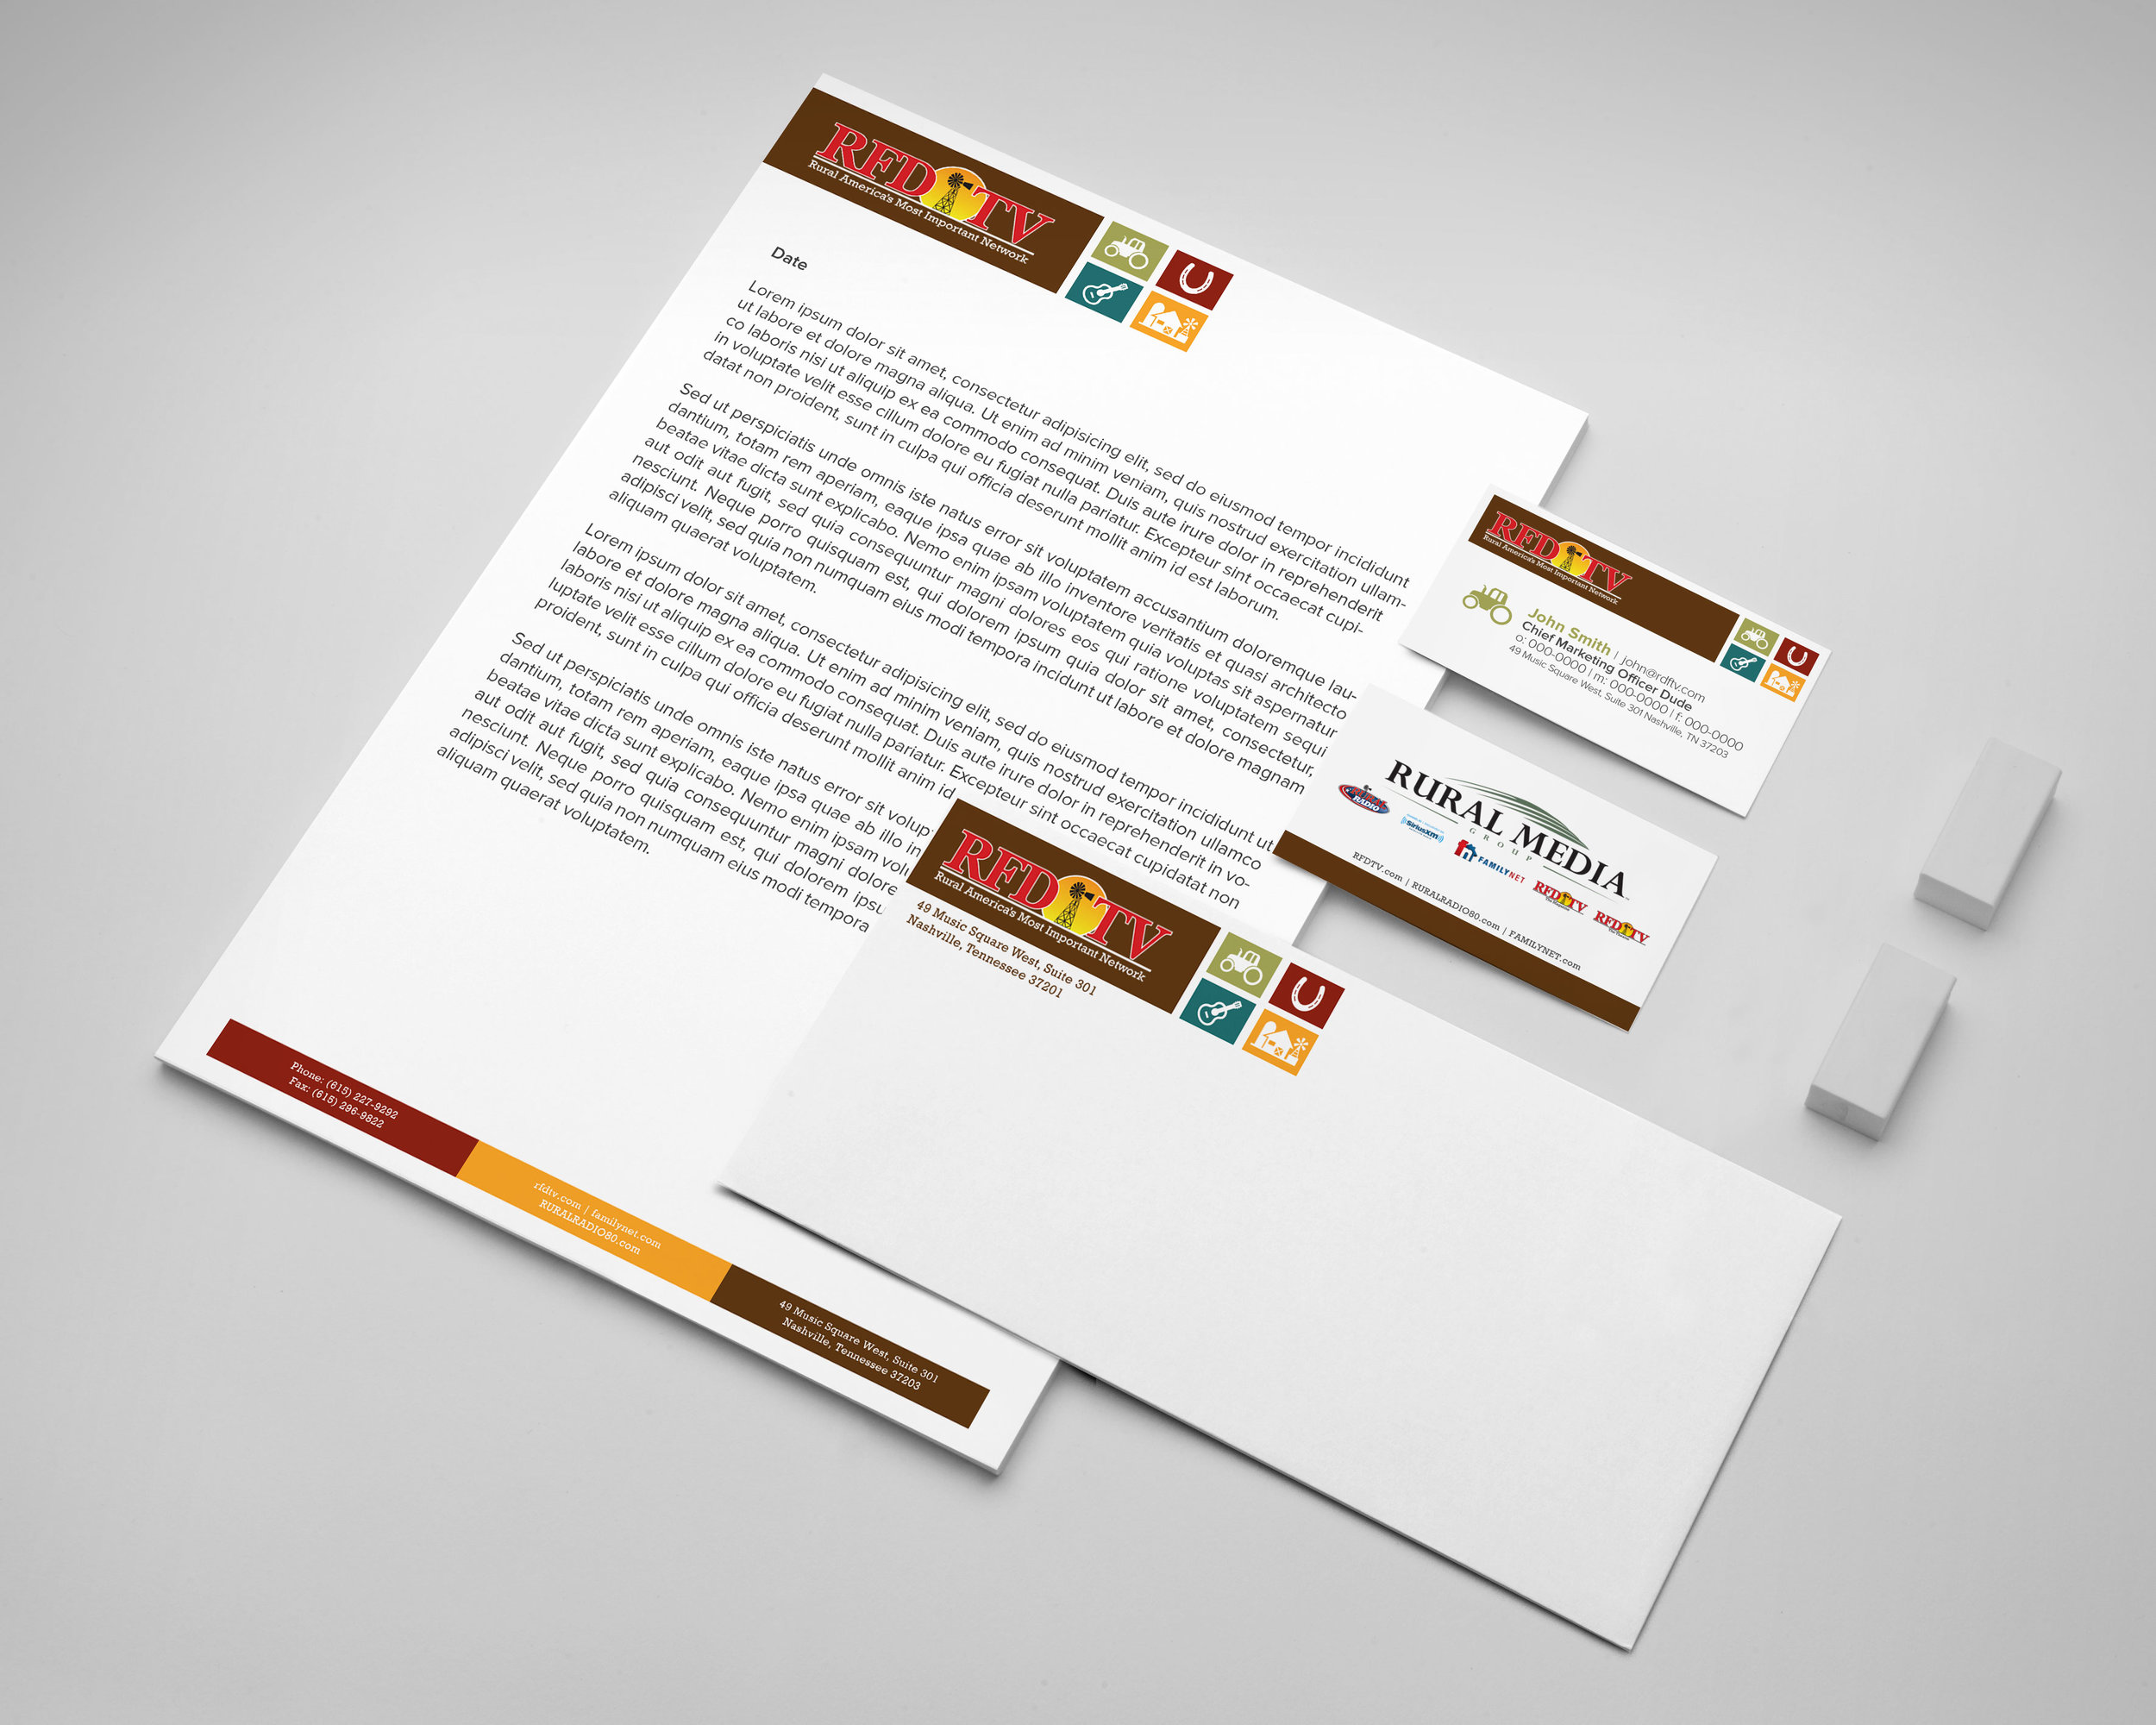 Initial brand mockups for RFD-TV of Rural Media Group.